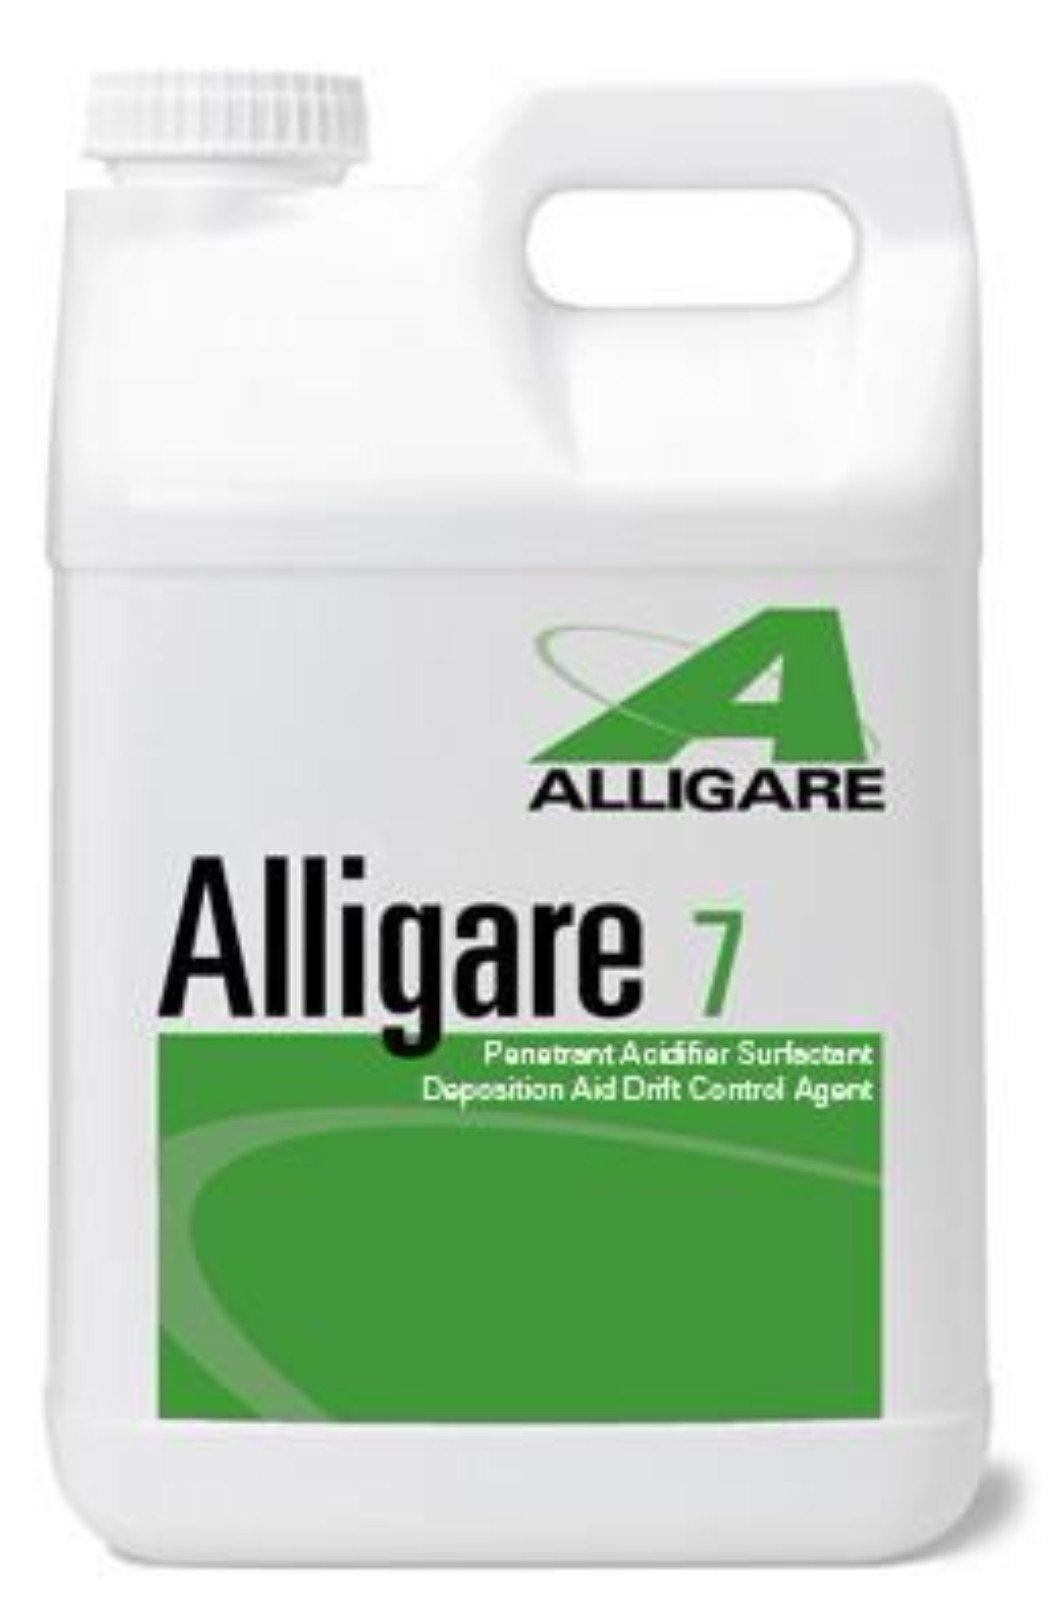 Surfactant - Alligare 7 Non-Ionic Surfactant For Pesticides